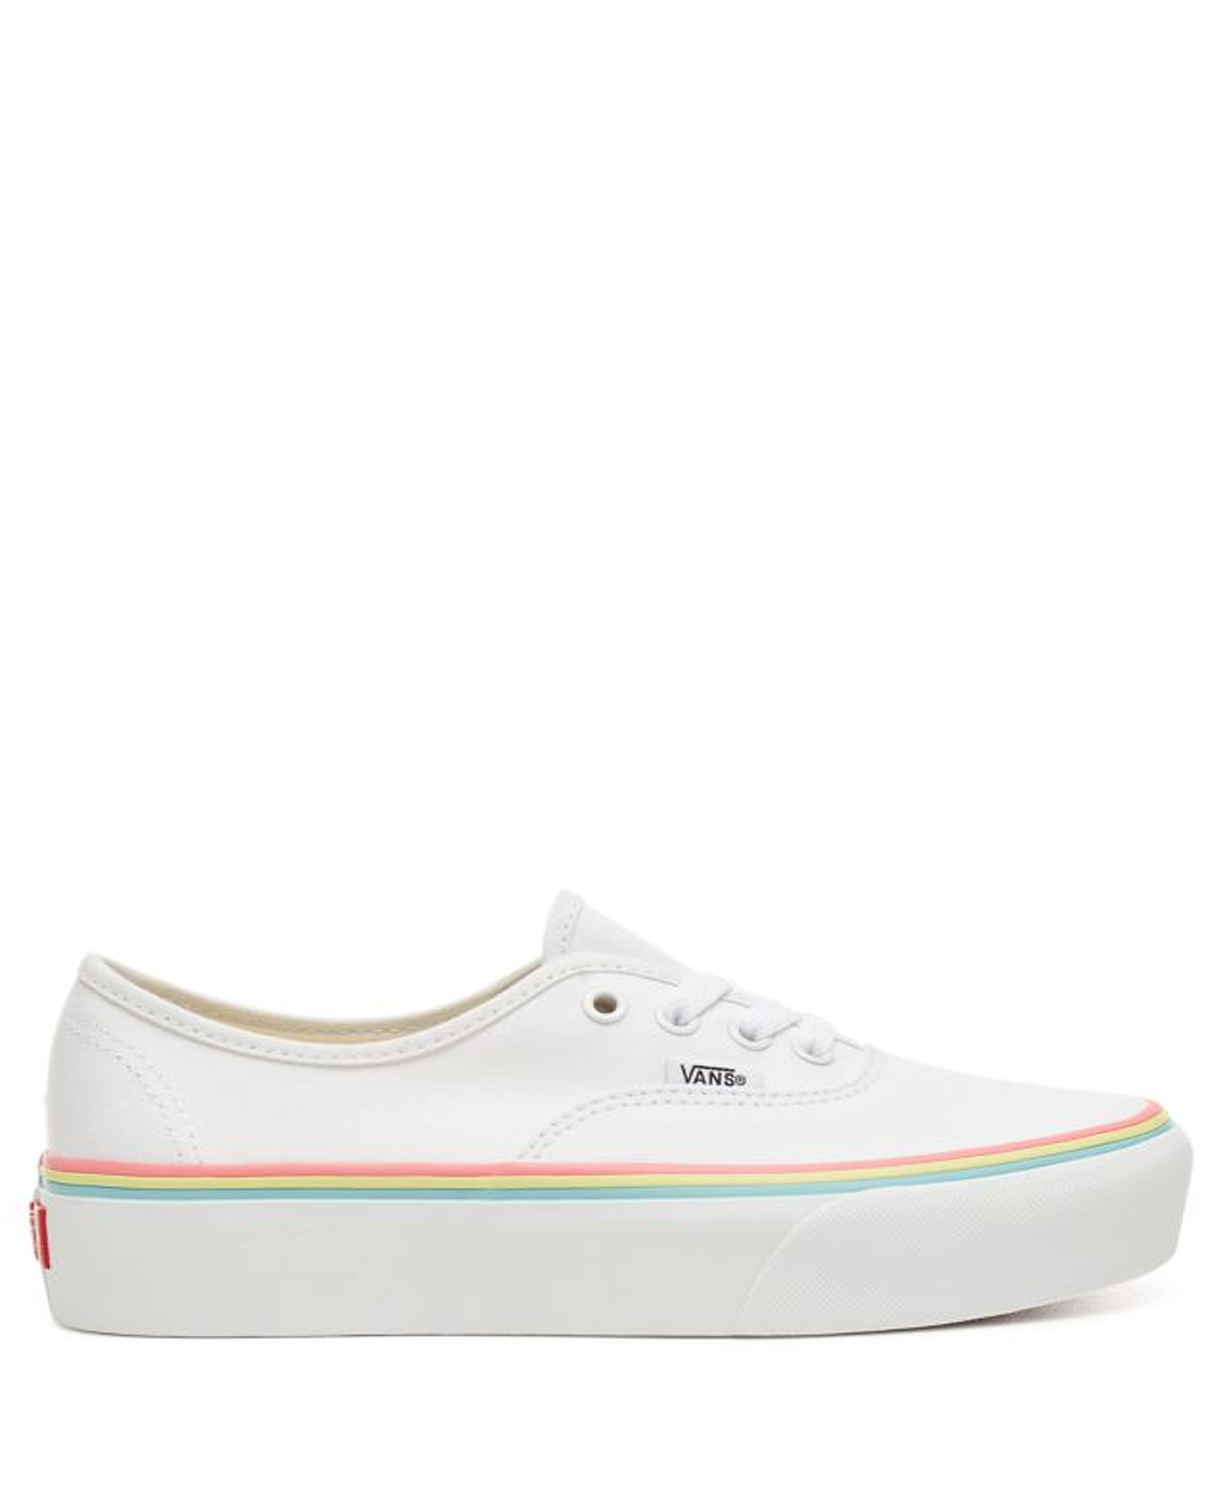 Vans Lage sneaker Wit AUTHENTIC PLATFORM